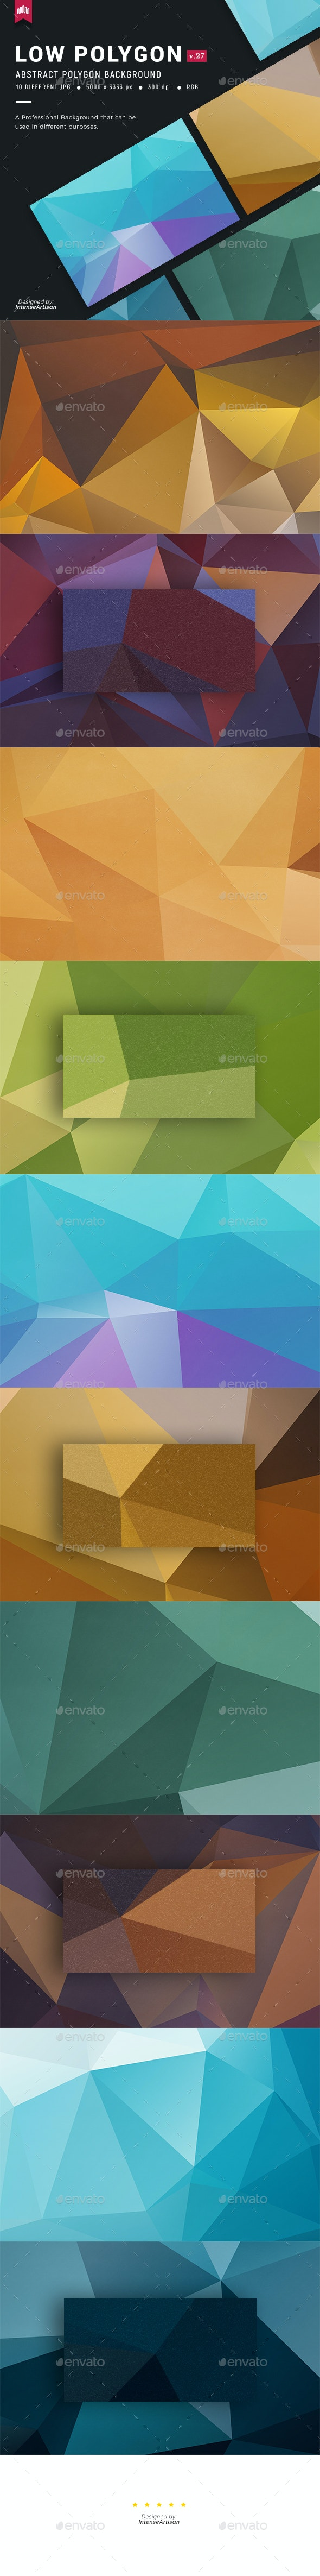 Minimal Polygon Background V.27 - Abstract Backgrounds